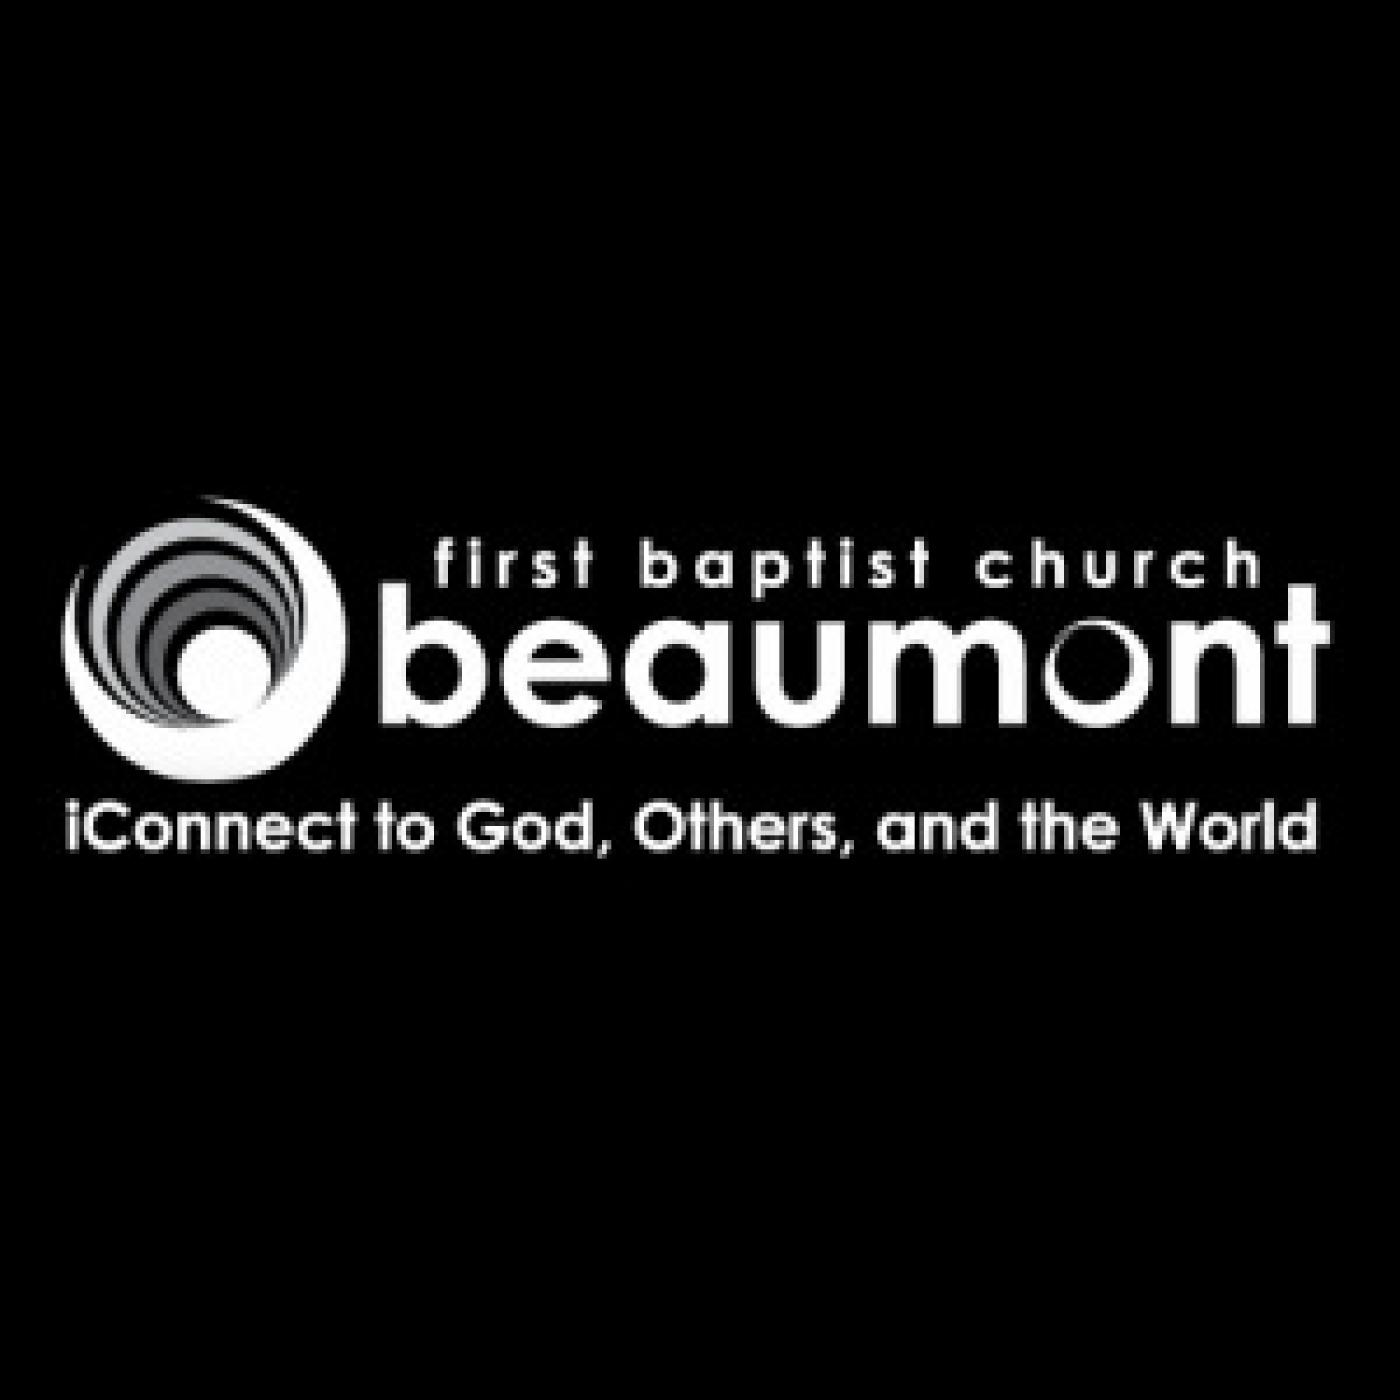 First Baptist Church of Beaumont